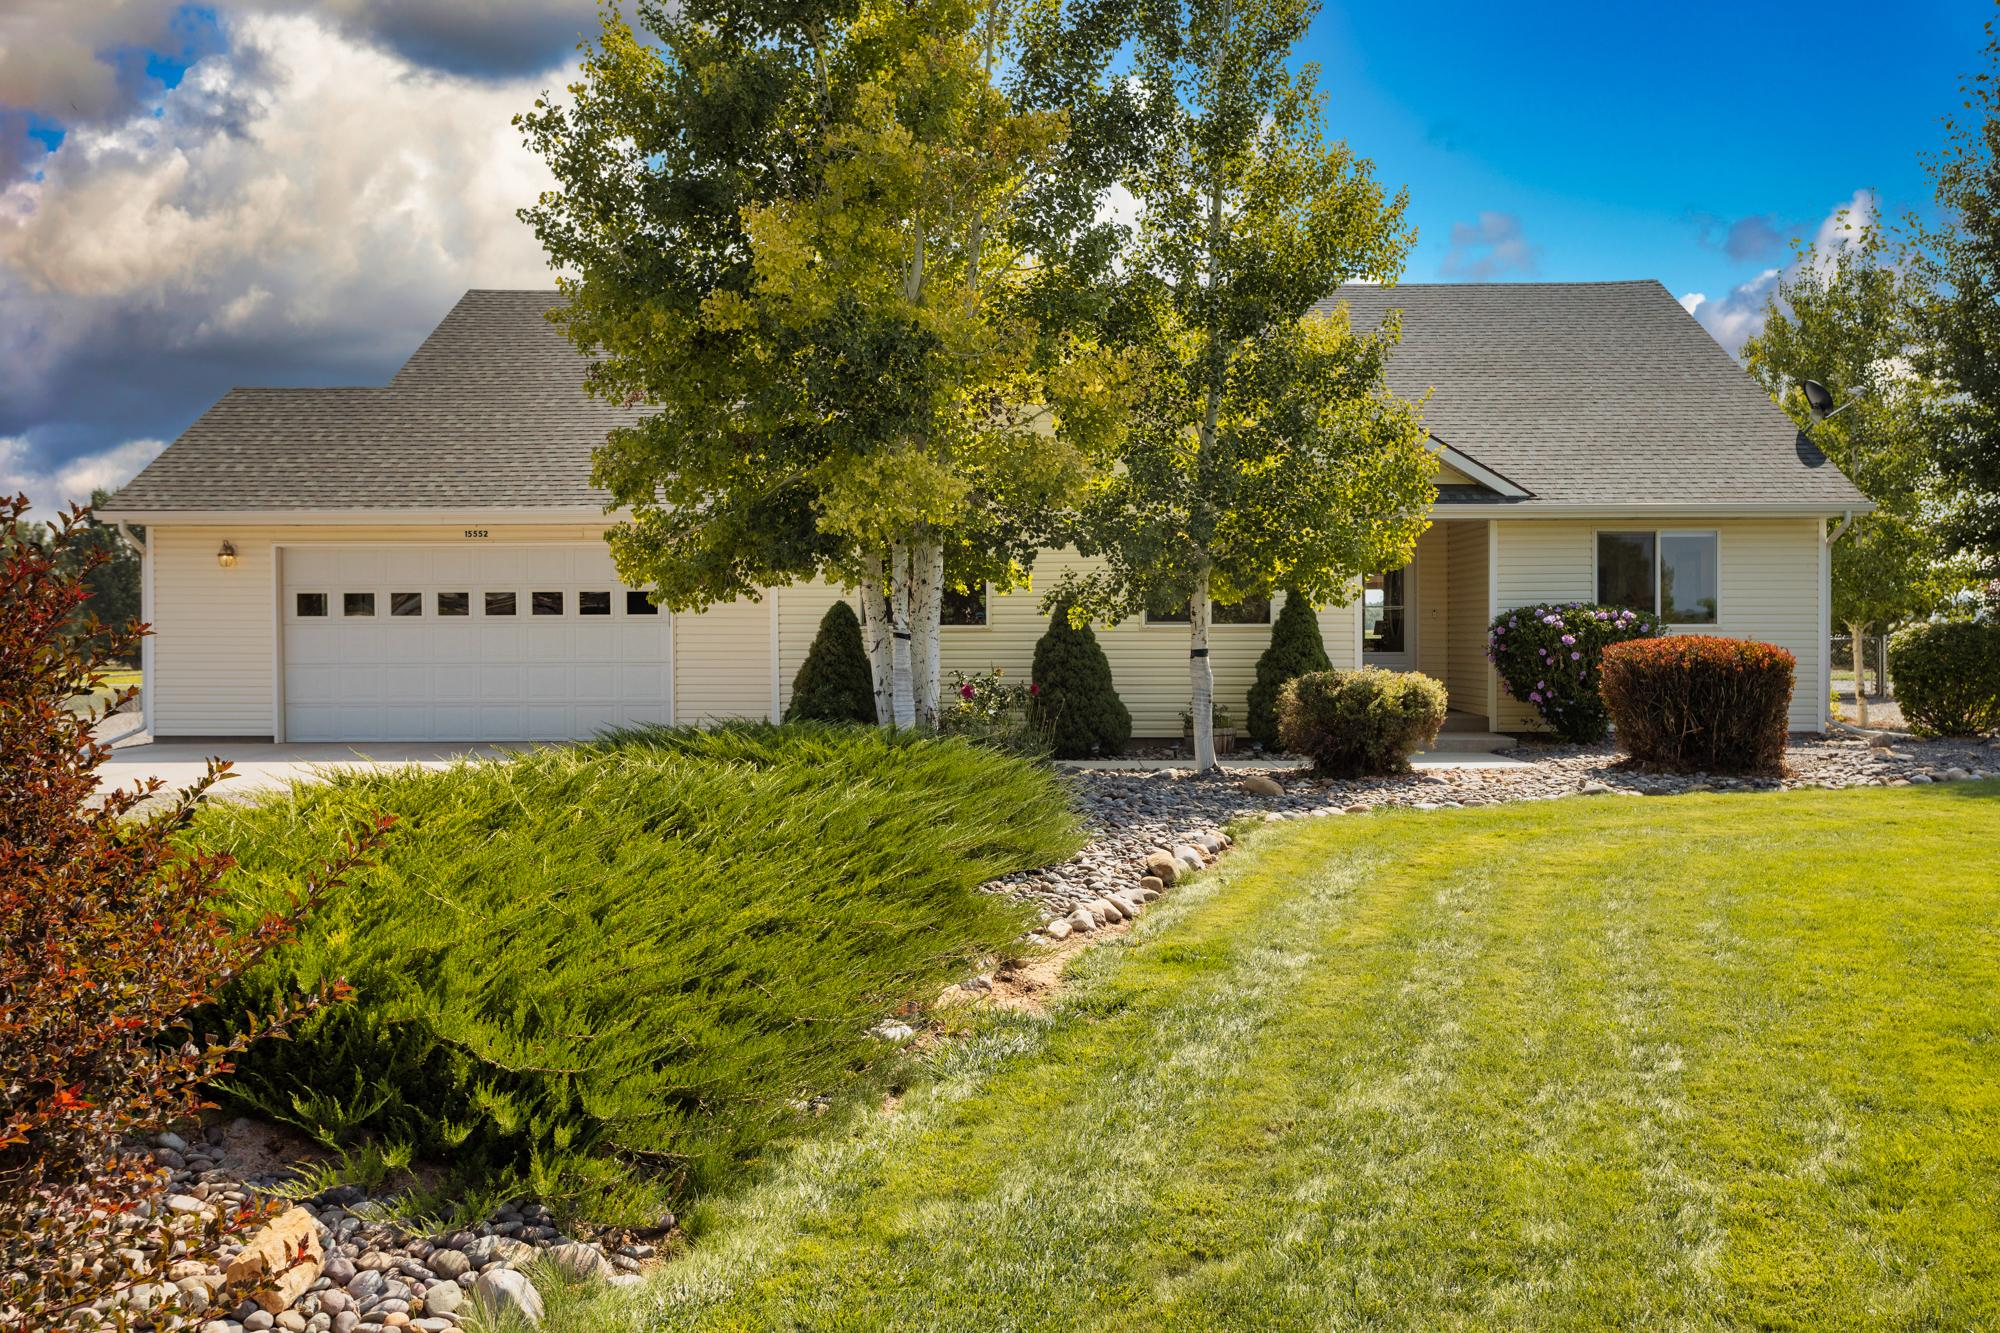 Front Yard Landscaping - 15552 6120 Rd Montrose, CO 81403 - Atha Team Country Real Estate